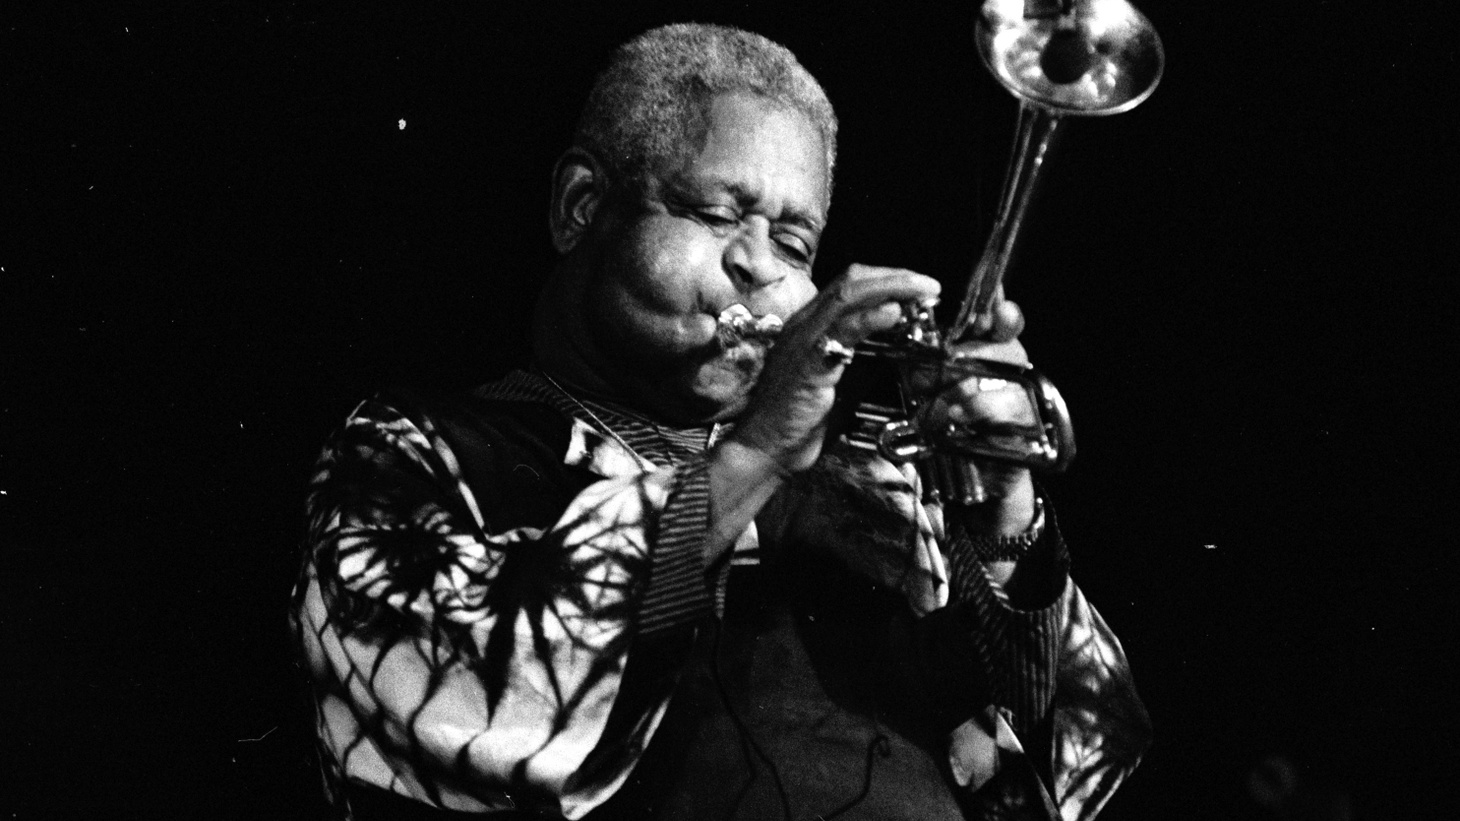 """October 21st marks the 100th anniversary of the birth of John Birks (""""Dizzy"""") Gillespie, an innovator of giant proportion who, along with Charlie Parker and Thelonious Monk, led a musical revolution called bebop that still reverberates. We'll celebrate his centennial with Dizzy's tunes as performed by others, but with a healthy dose of Dizzy's own compositions."""